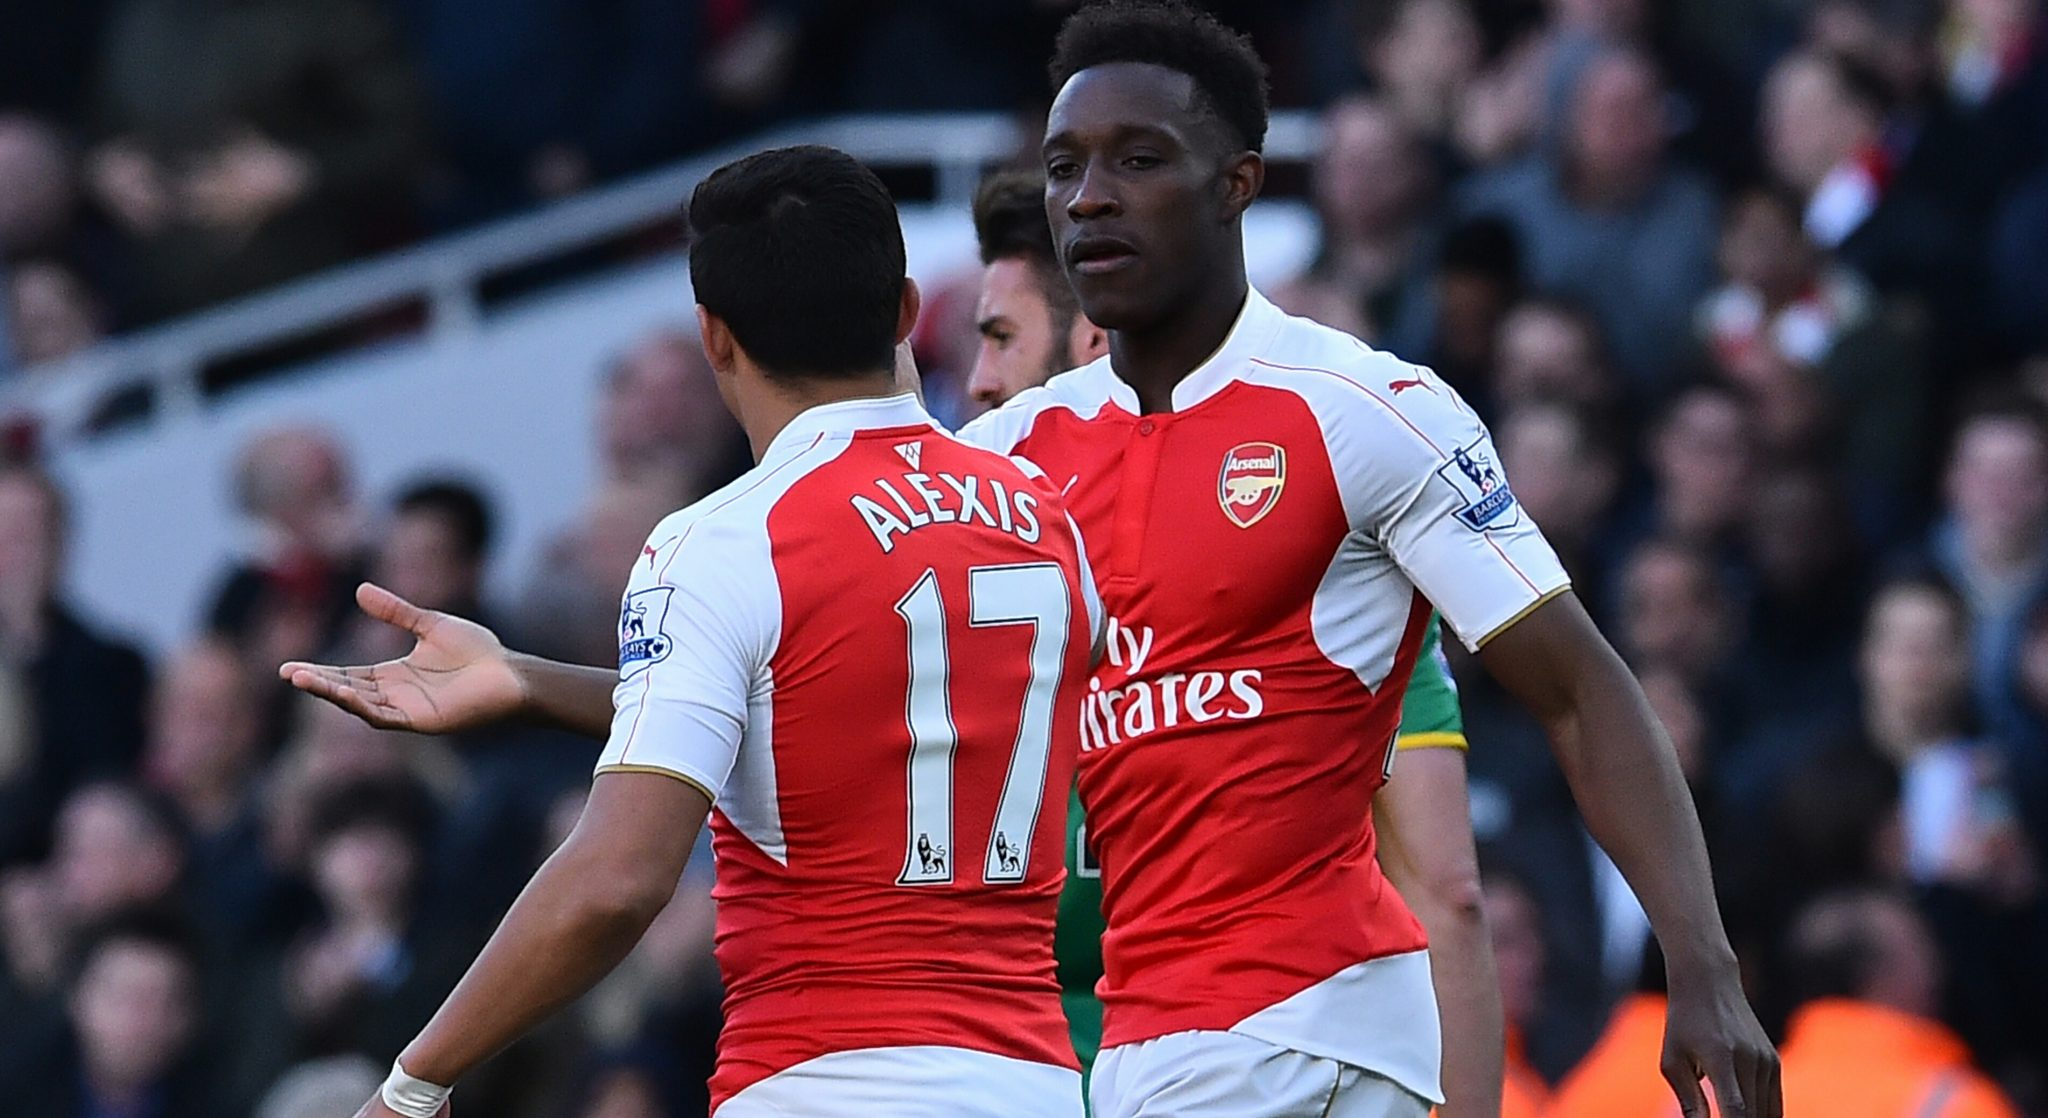 rsenal's English striker Danny Welbeck (R) celebrates with Arsenal's Chilean striker Alexis Sanchez (L) after scoring the opening goal during the English Premier League football game against Norwich. PHOTO: AFP/BEN STANSALL